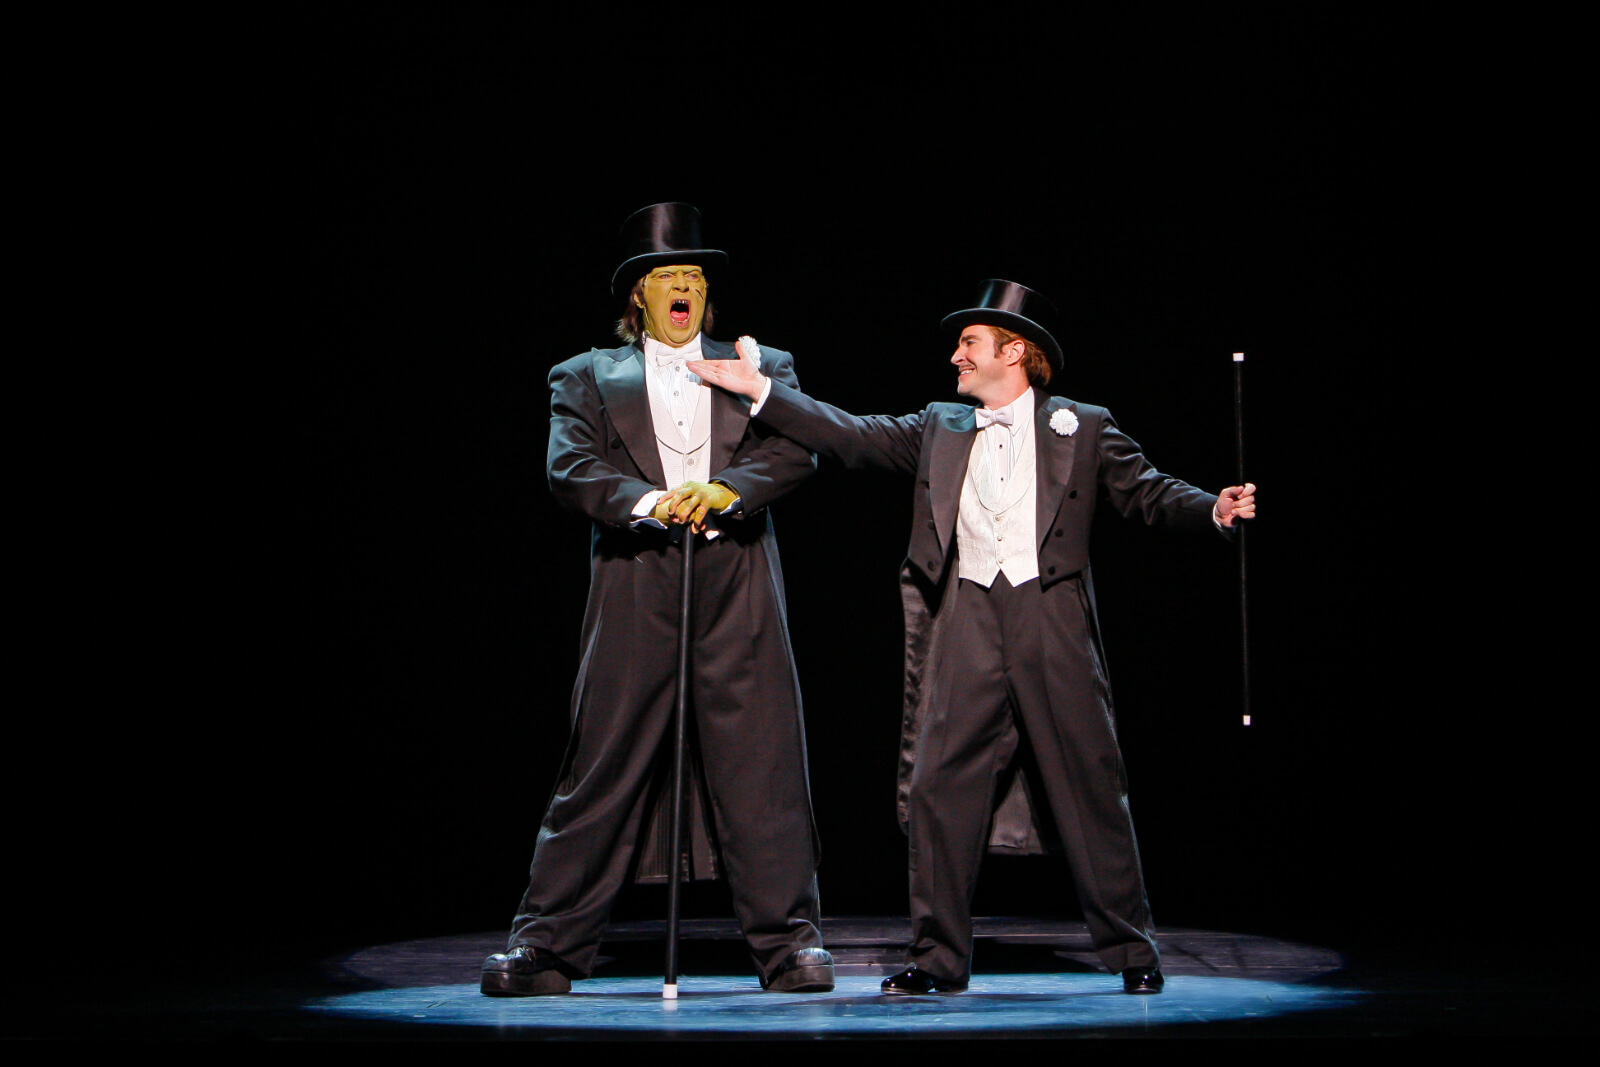 """Dr. Frankenstein (Roger Bart) invites the Monster (Shuler Hensley) to sing """"Puttin' on the Ritz"""". They are in top hat and tails holding canes."""